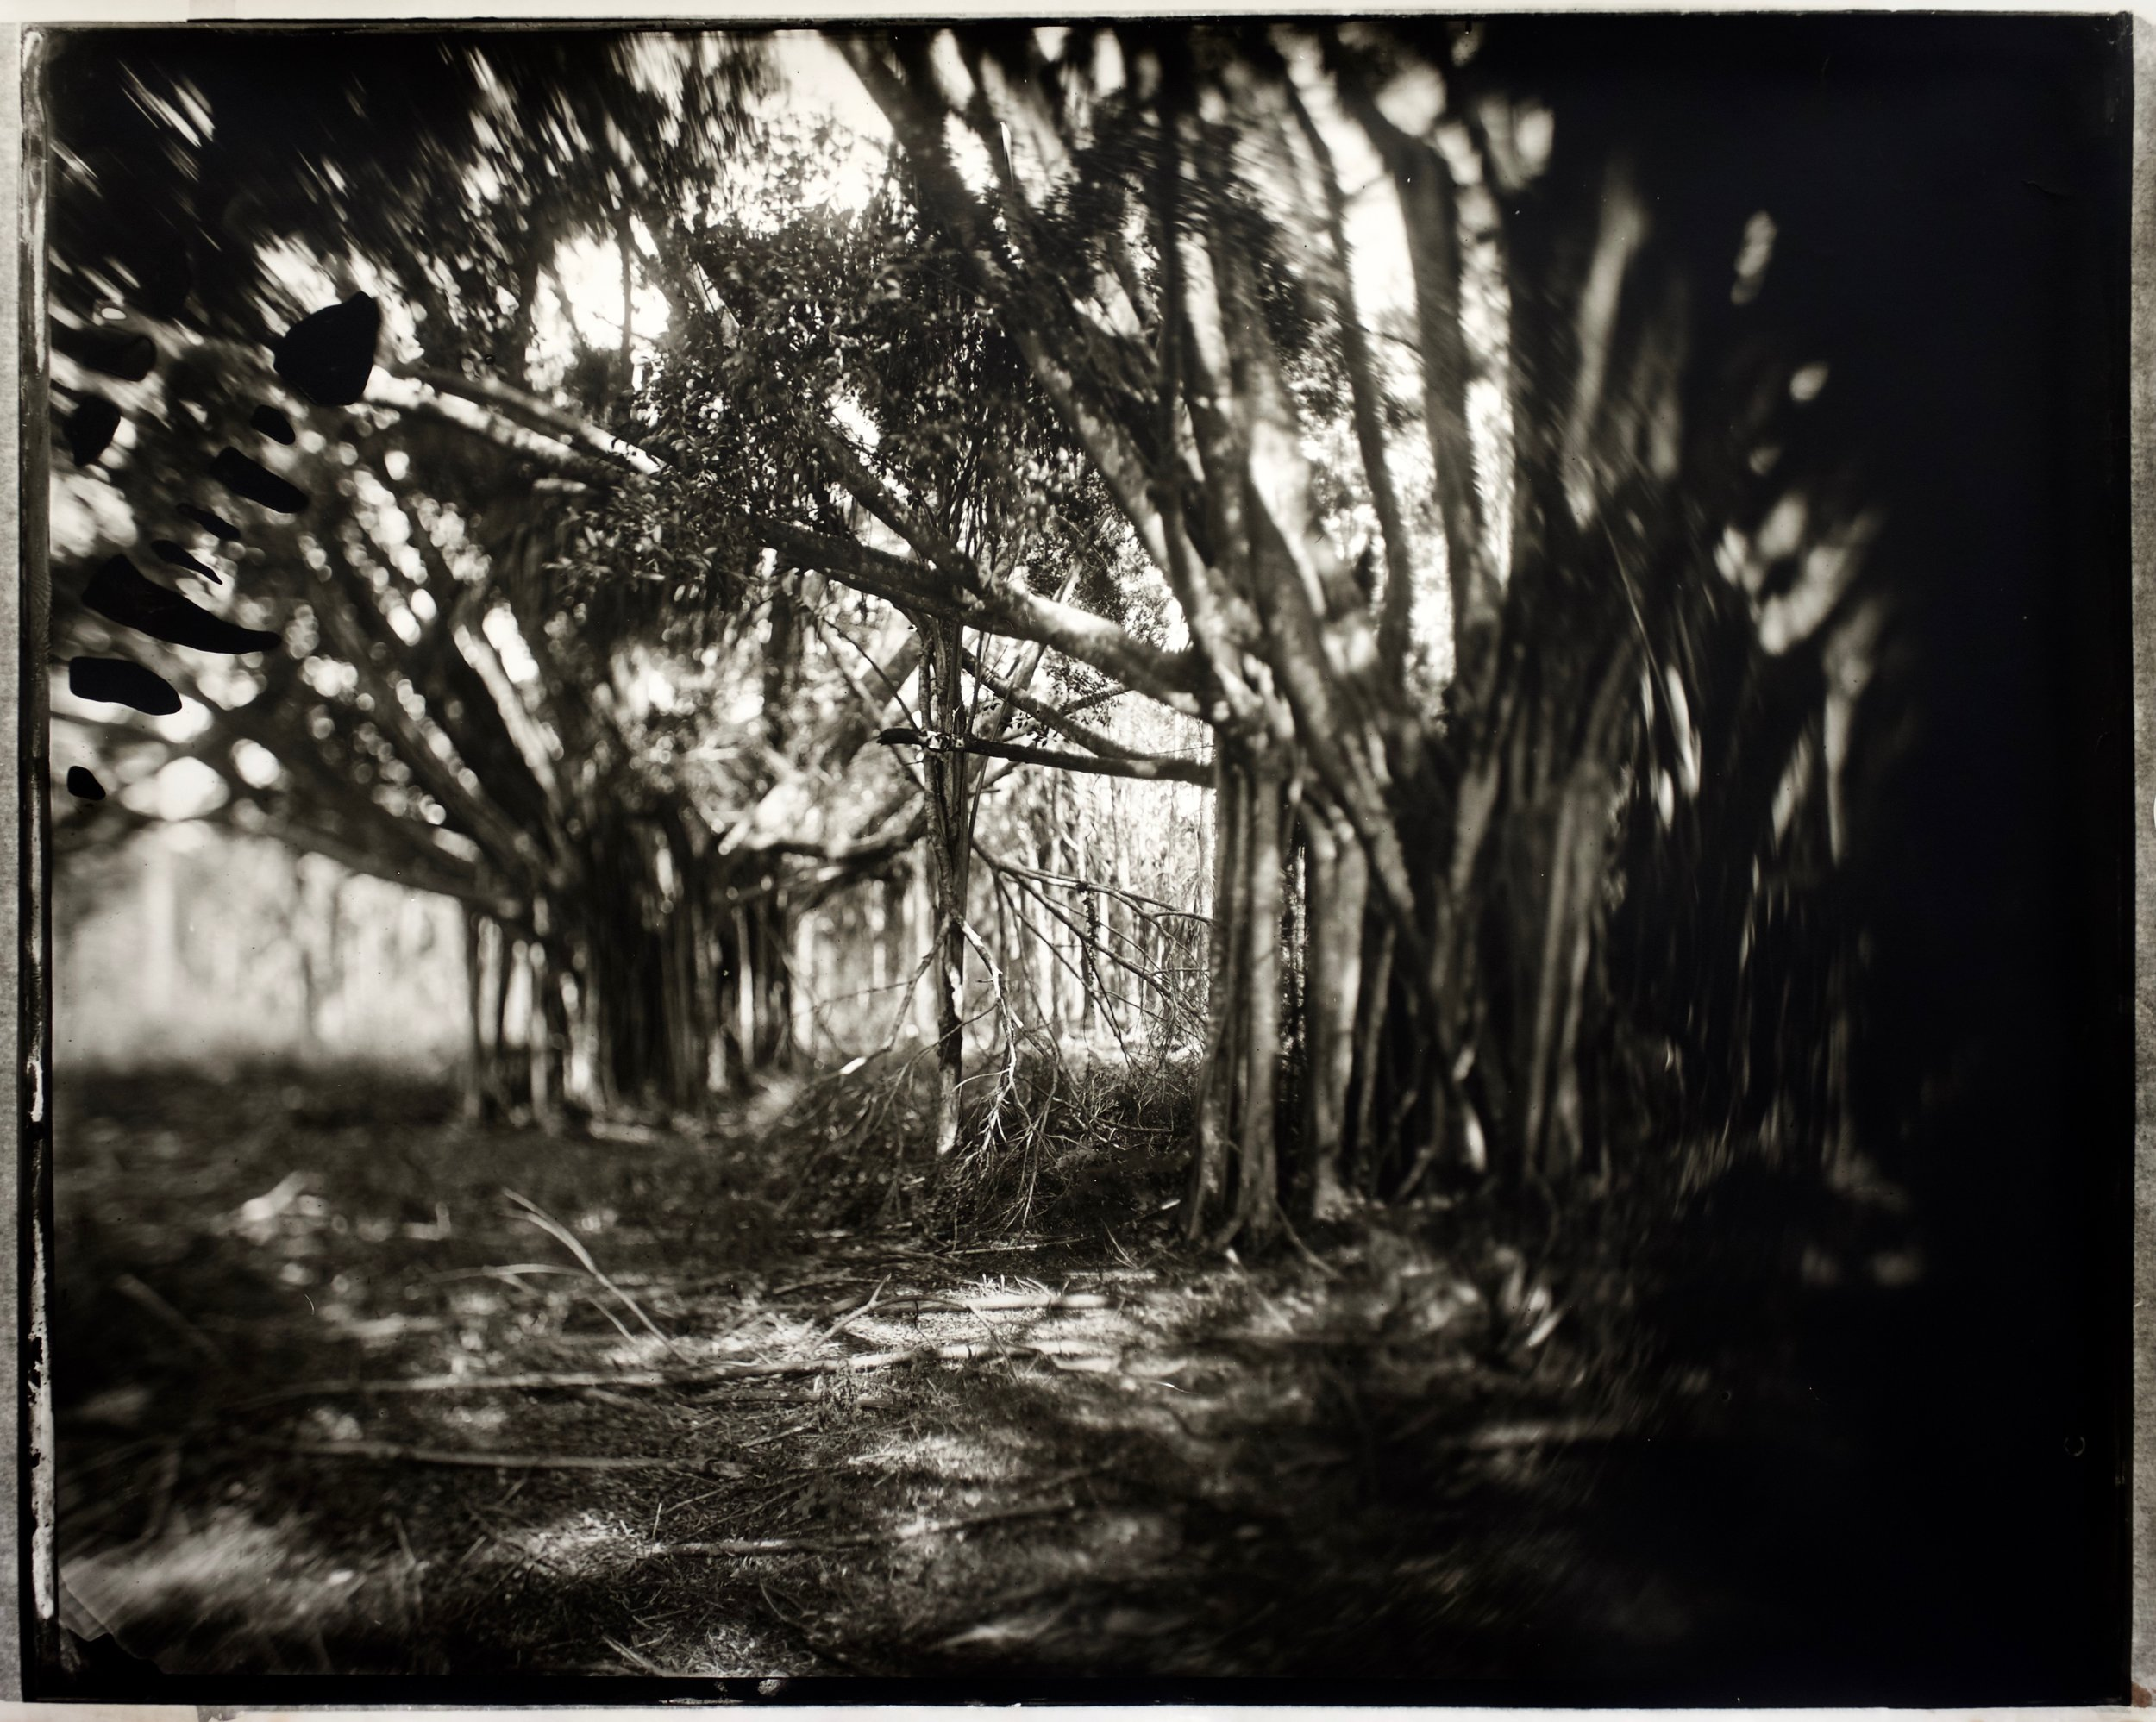 Lectio Divinia, 50 in. x 41 in., collodian negative hand printed on Fomatone paper, 2018. #2018-4.jpg